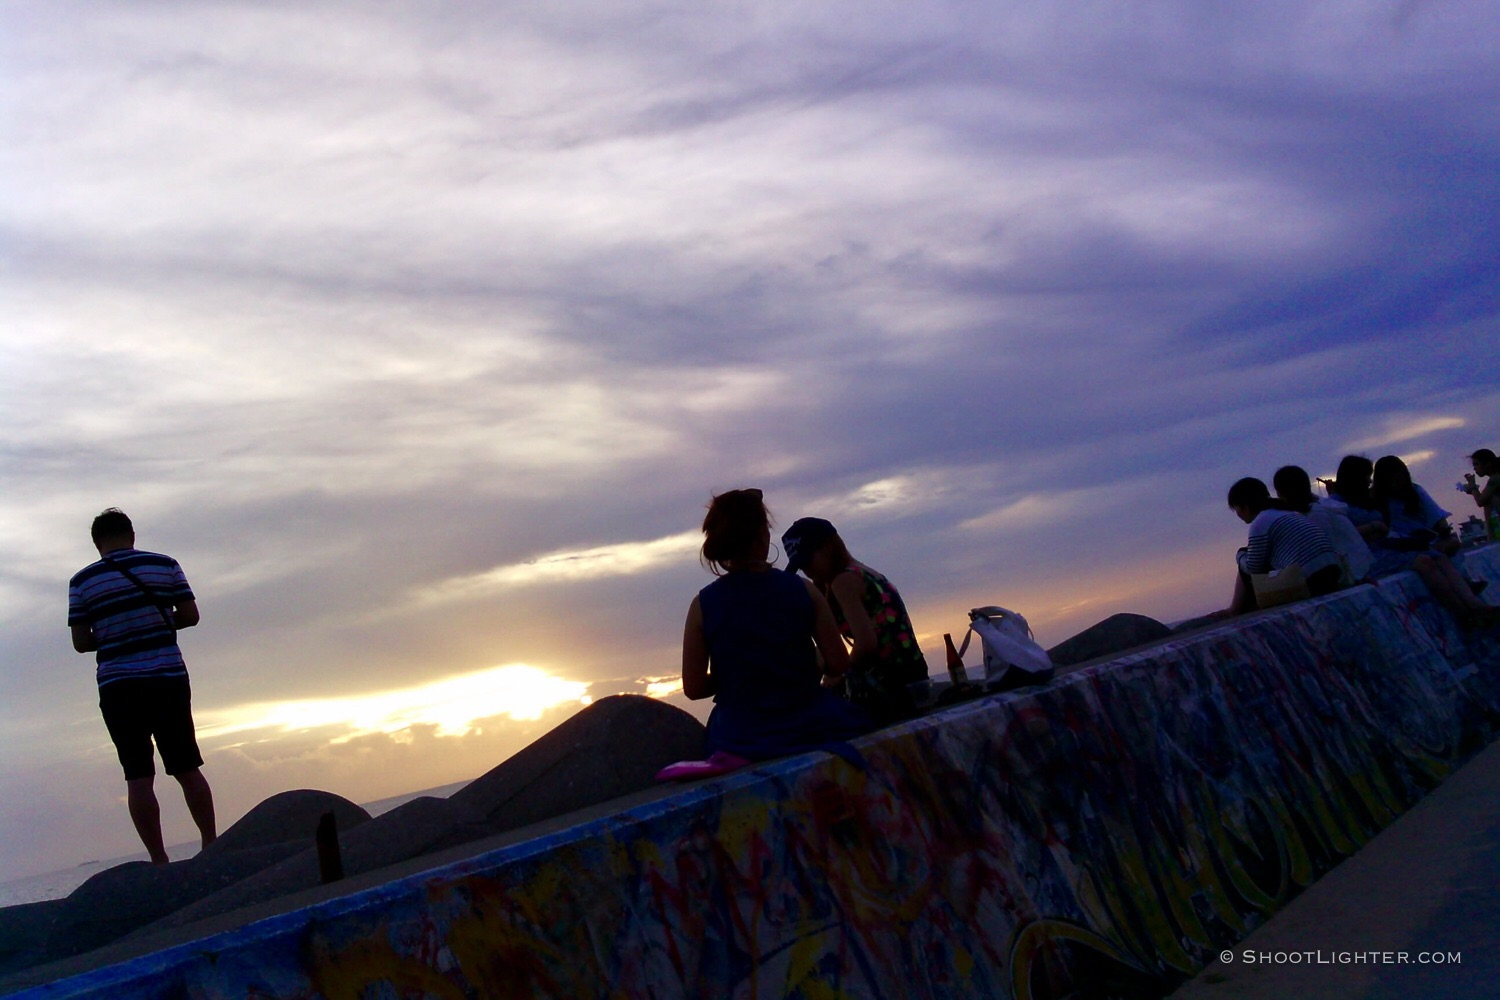 Sunset viewing in Mihama, Okinawa, Japan. Captured with my Narrative Clip.